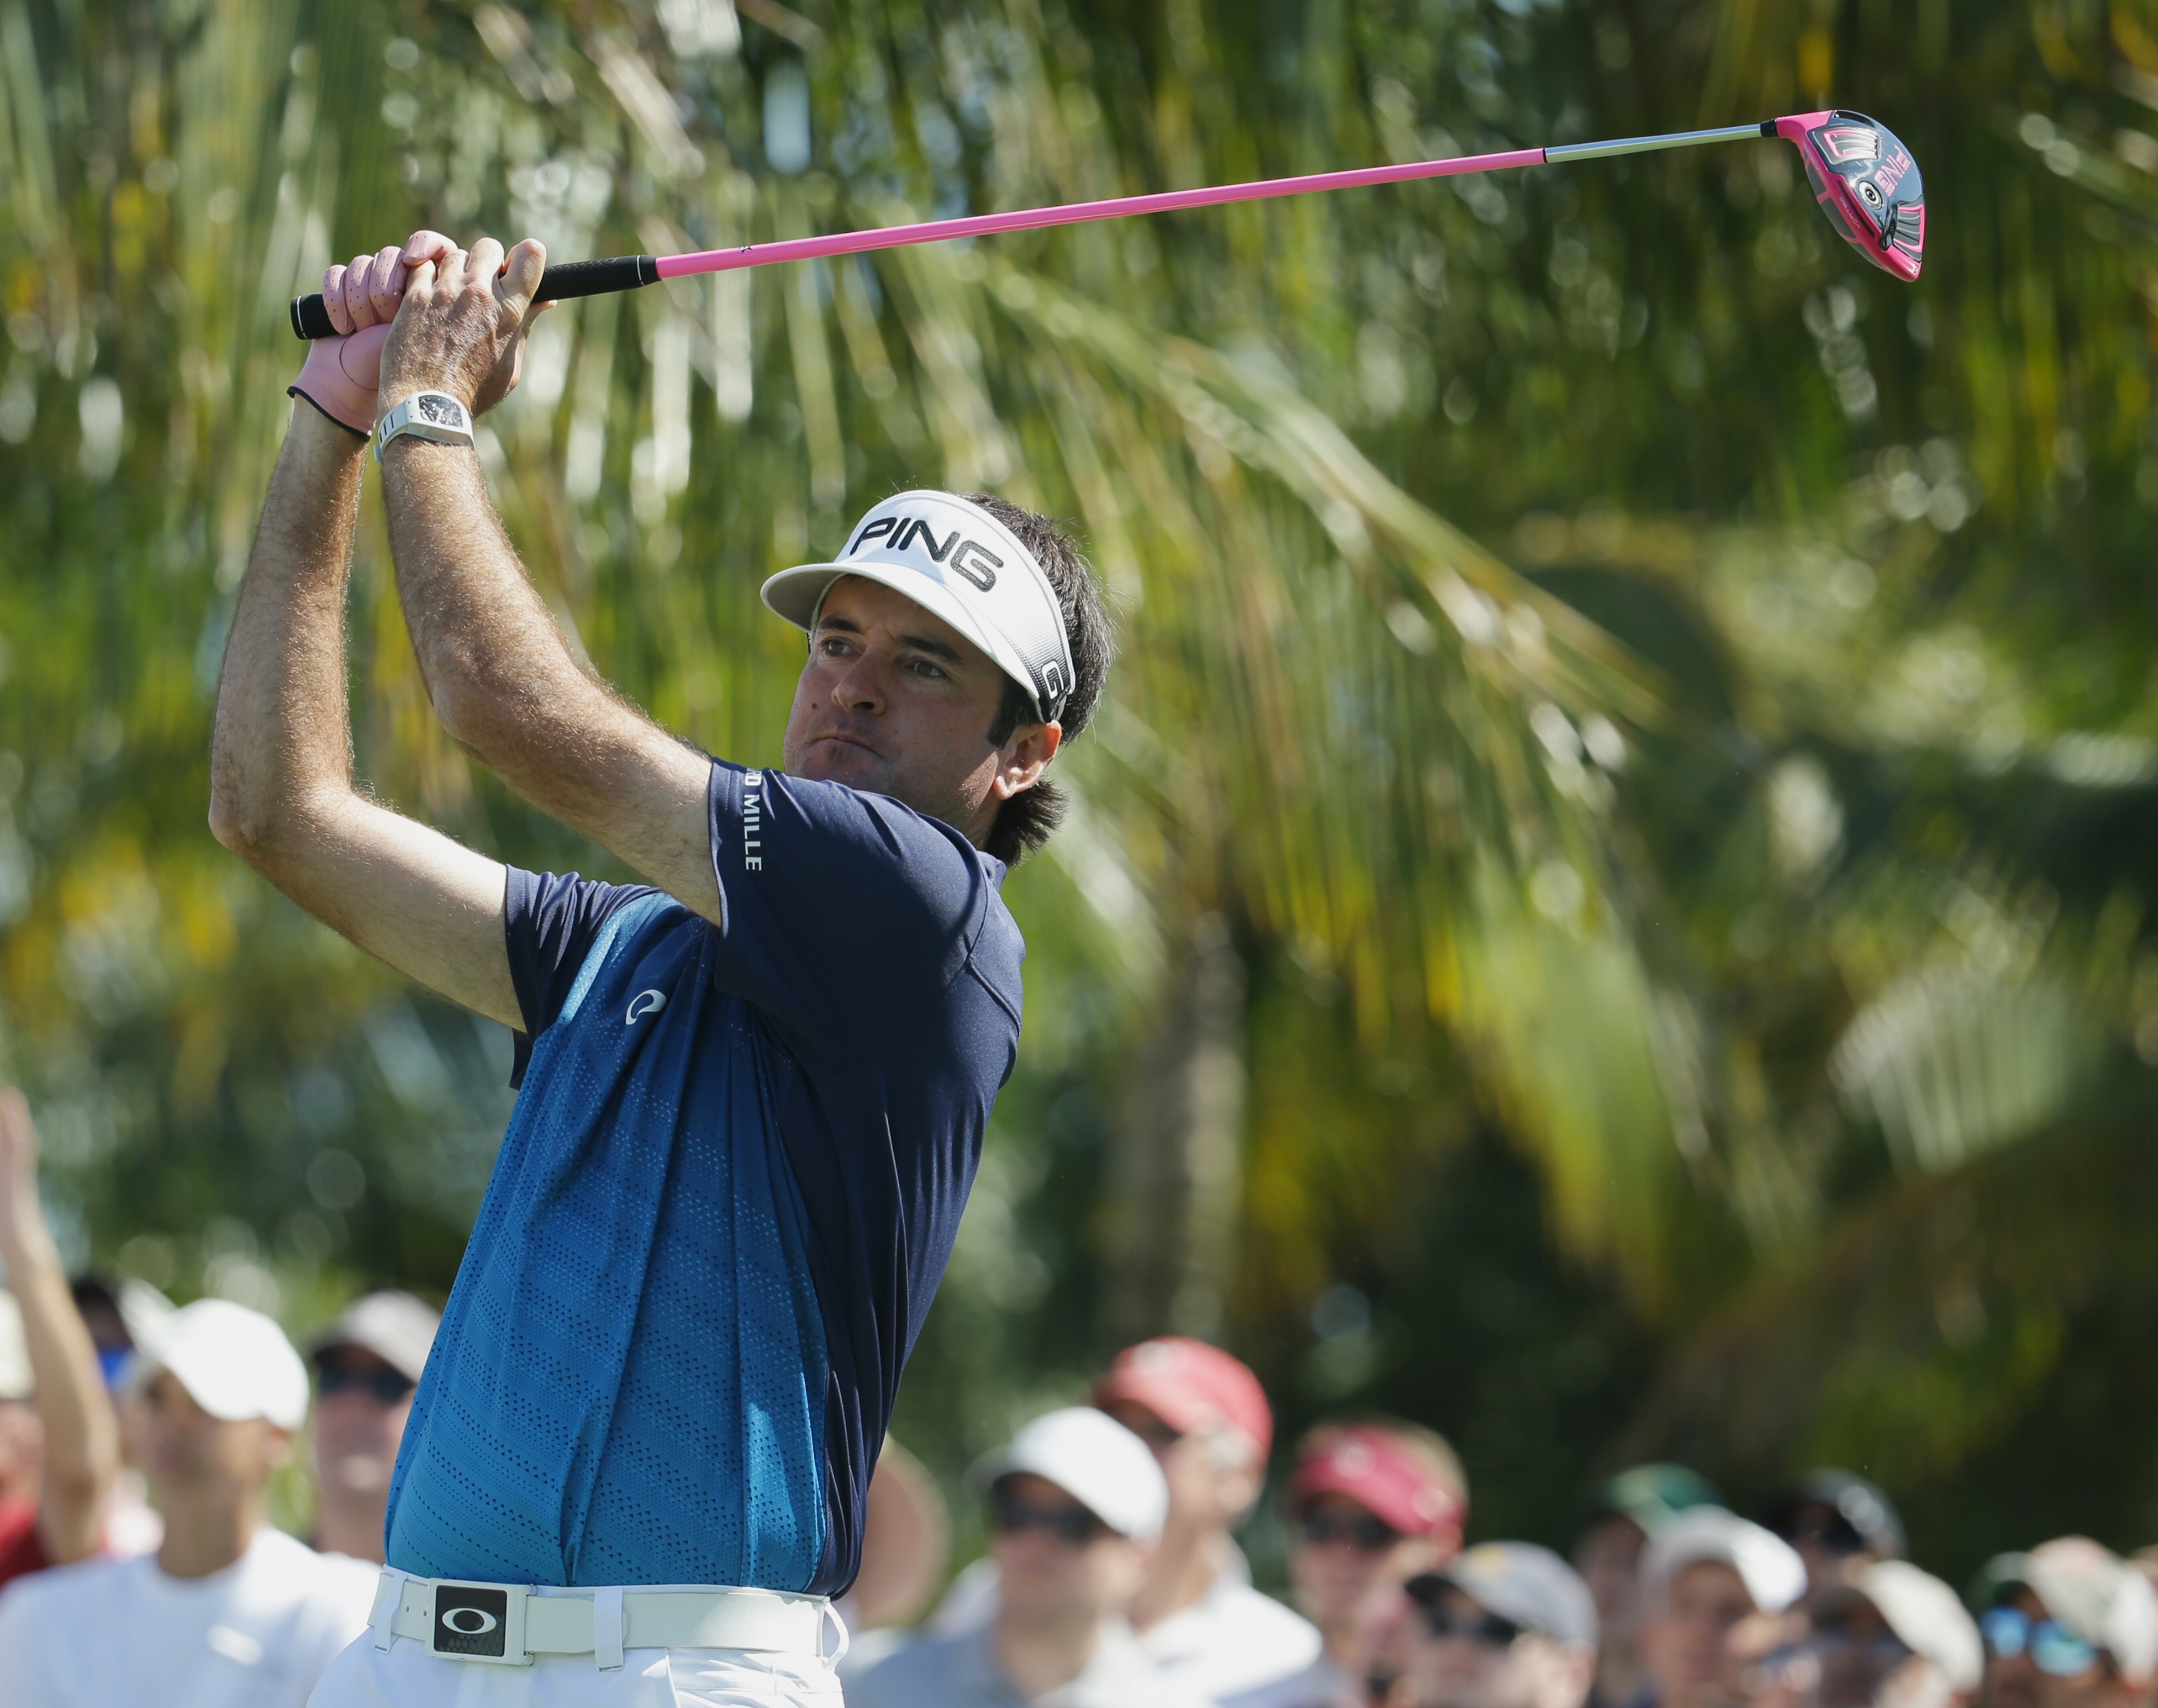 Bubba Watson hits from the second tee during the final round of the Cadillac Championship golf tournament, Sunday, March 6, 2016, in Doral, Fla. (AP Photo/Lynne Sladky)